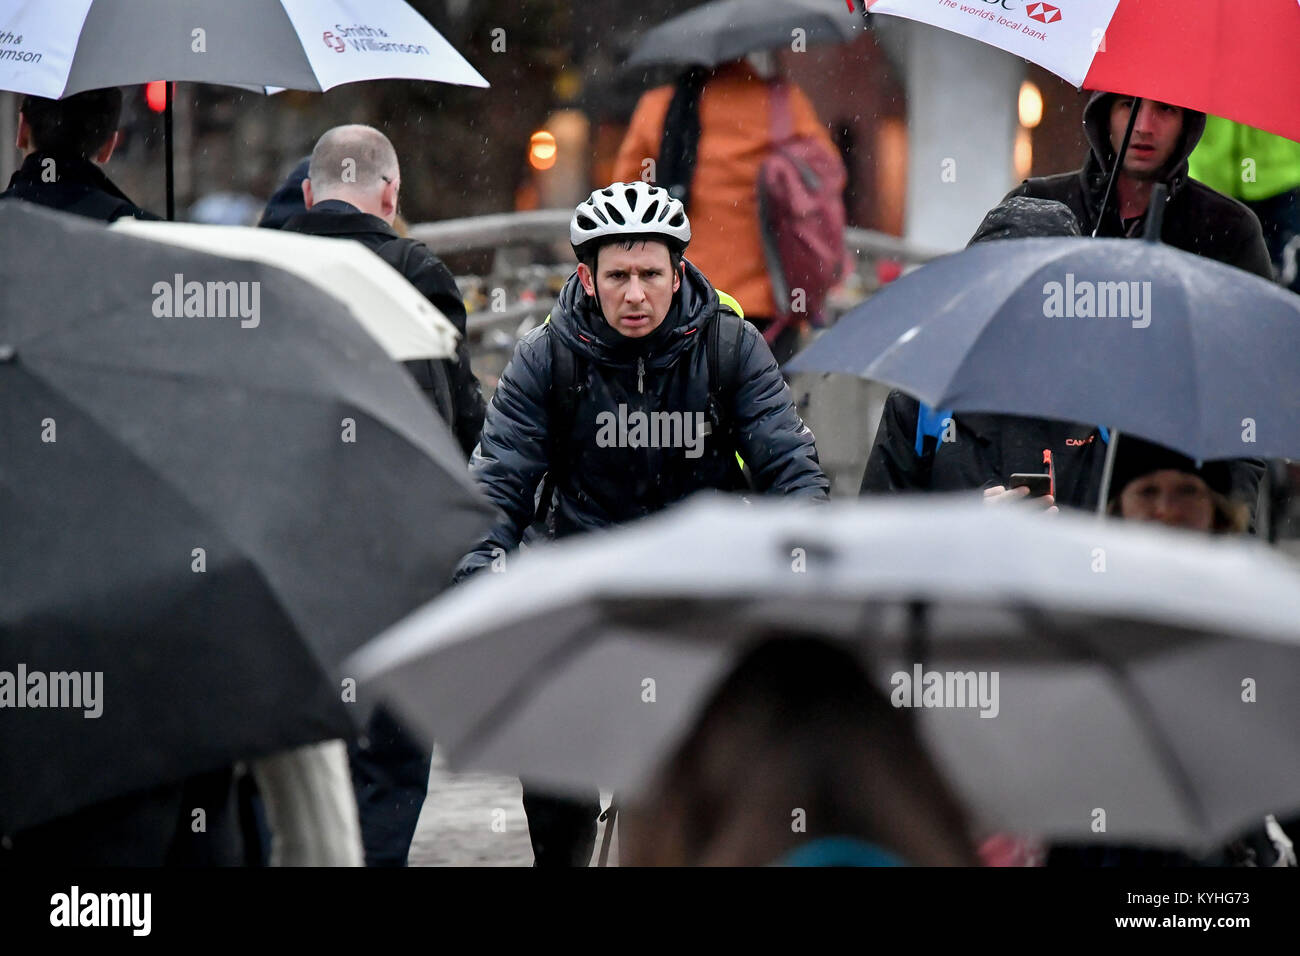 A cyclist passes people sheltering under umbrellas in pouring rain as they commute to work over Millennium Bridge, - Stock Image